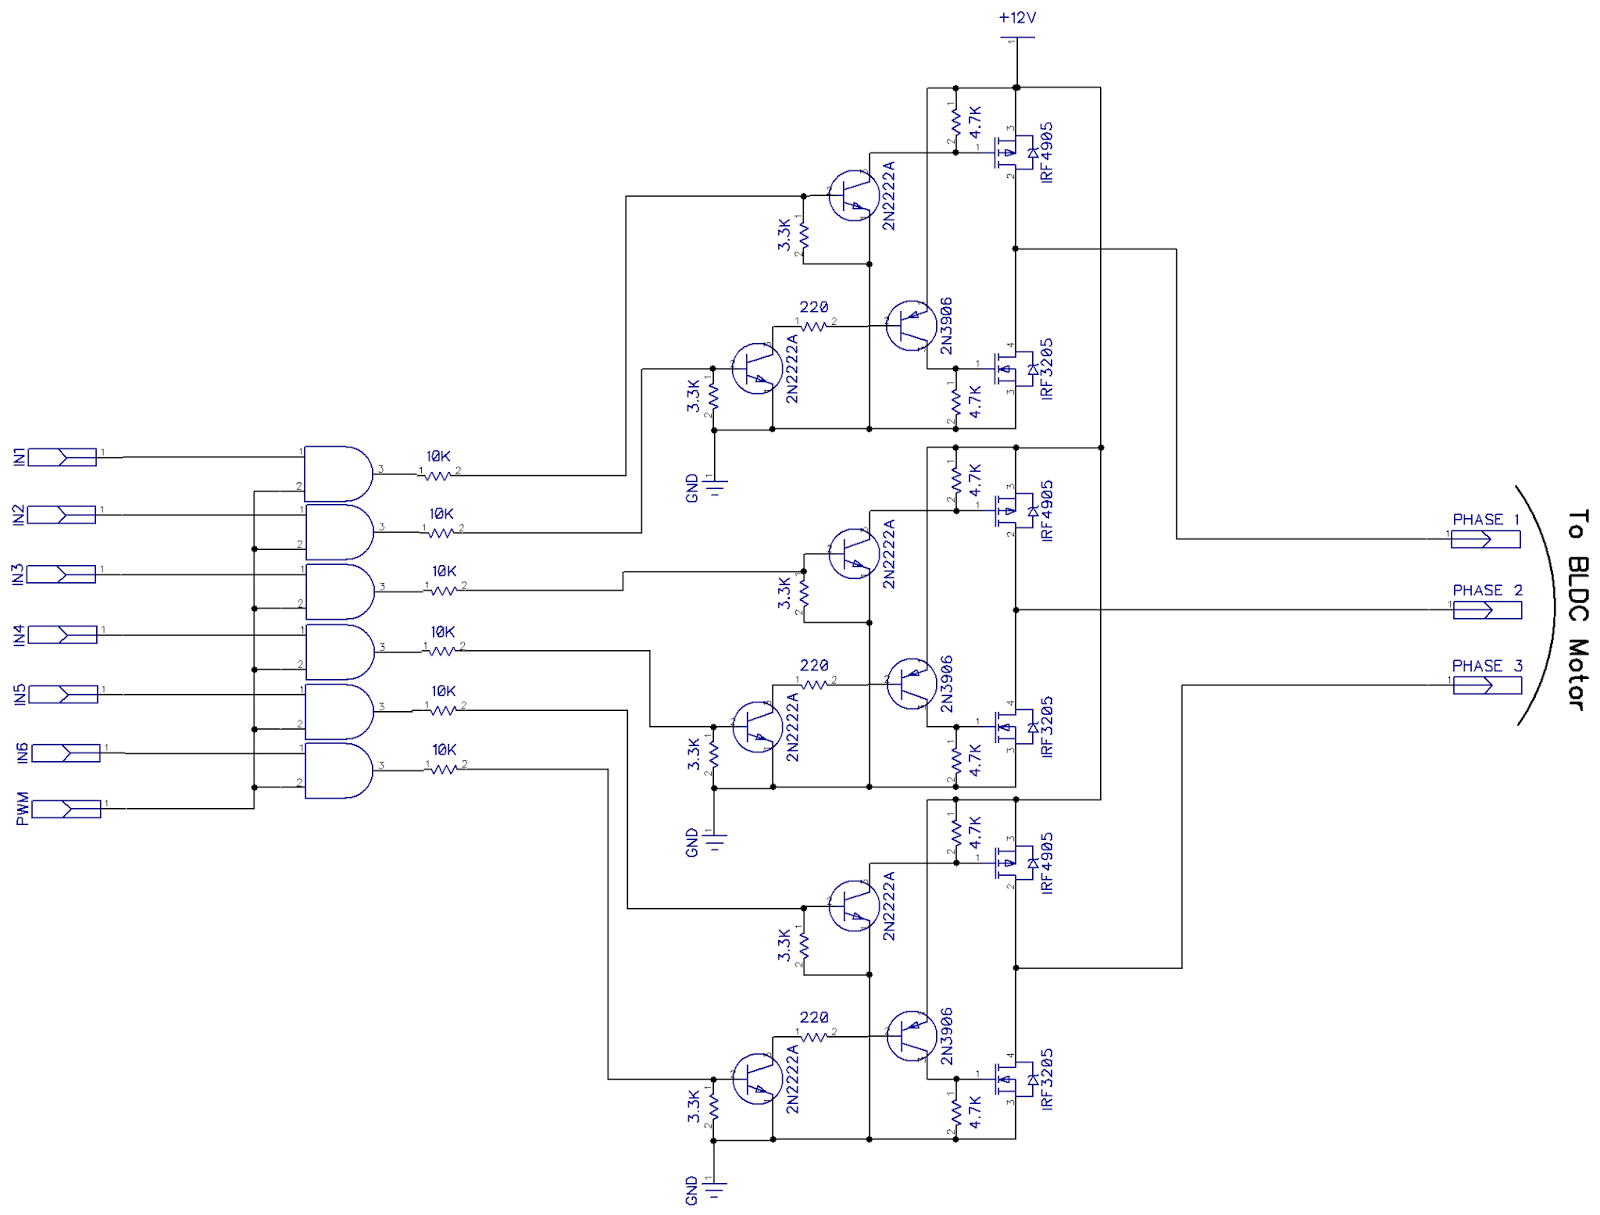 wiring diagram of wye delta motor control gmc sierra stereo 480 three phase get free image about